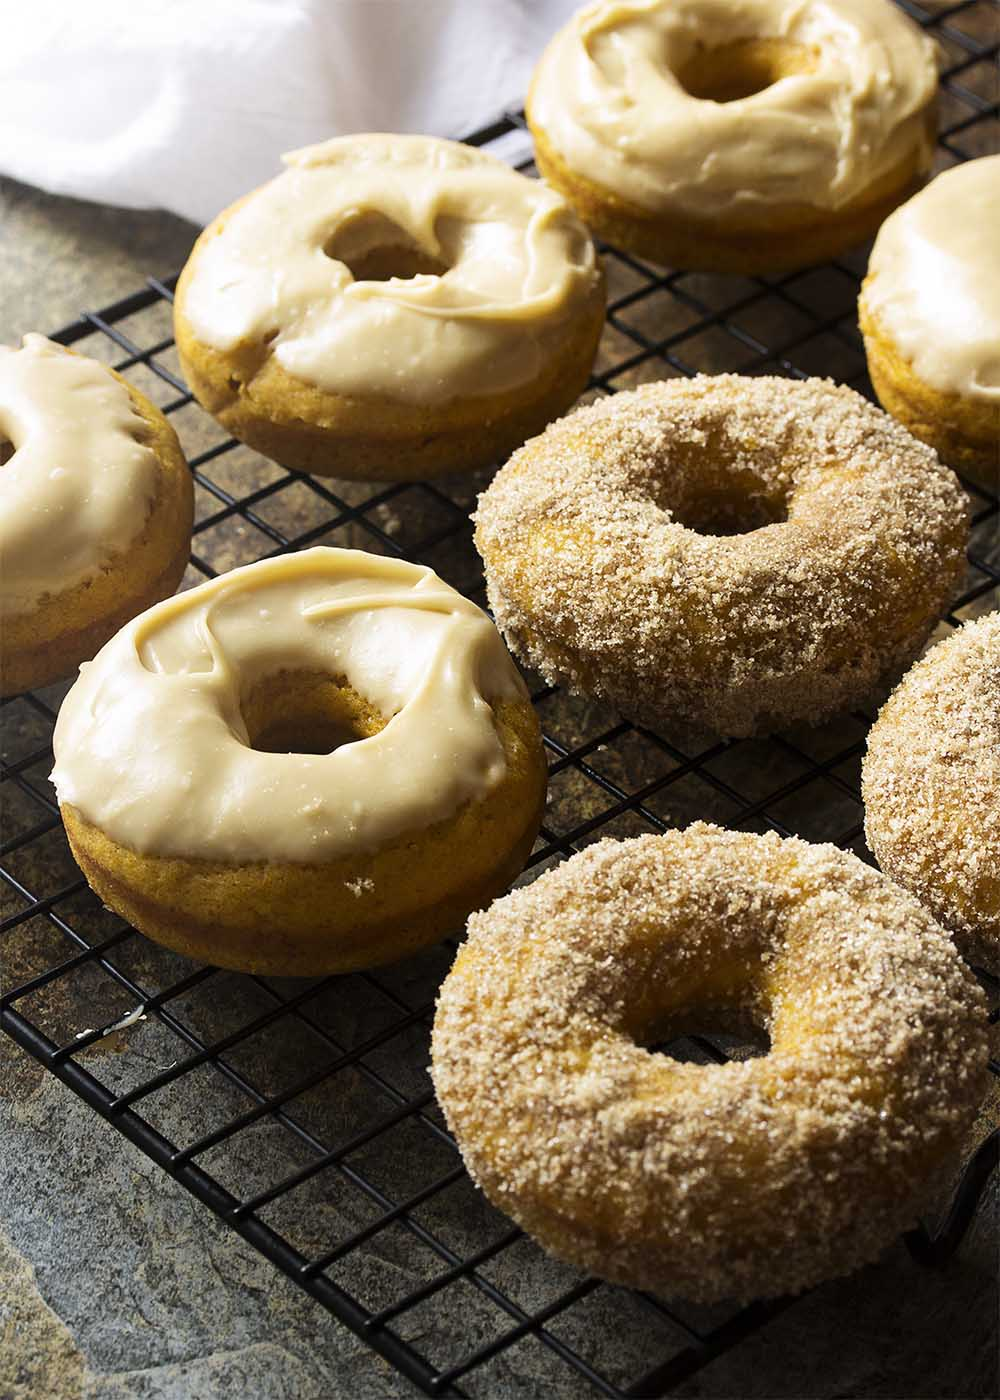 These easy and tasty baked pumpkin donuts are full of pumpkin puree and warming spices for a great fall breakfast or dessert. Either top them with a maple butterscotch glaze or roll them in cinnamon sugar. | justalittlebitofbacon.com